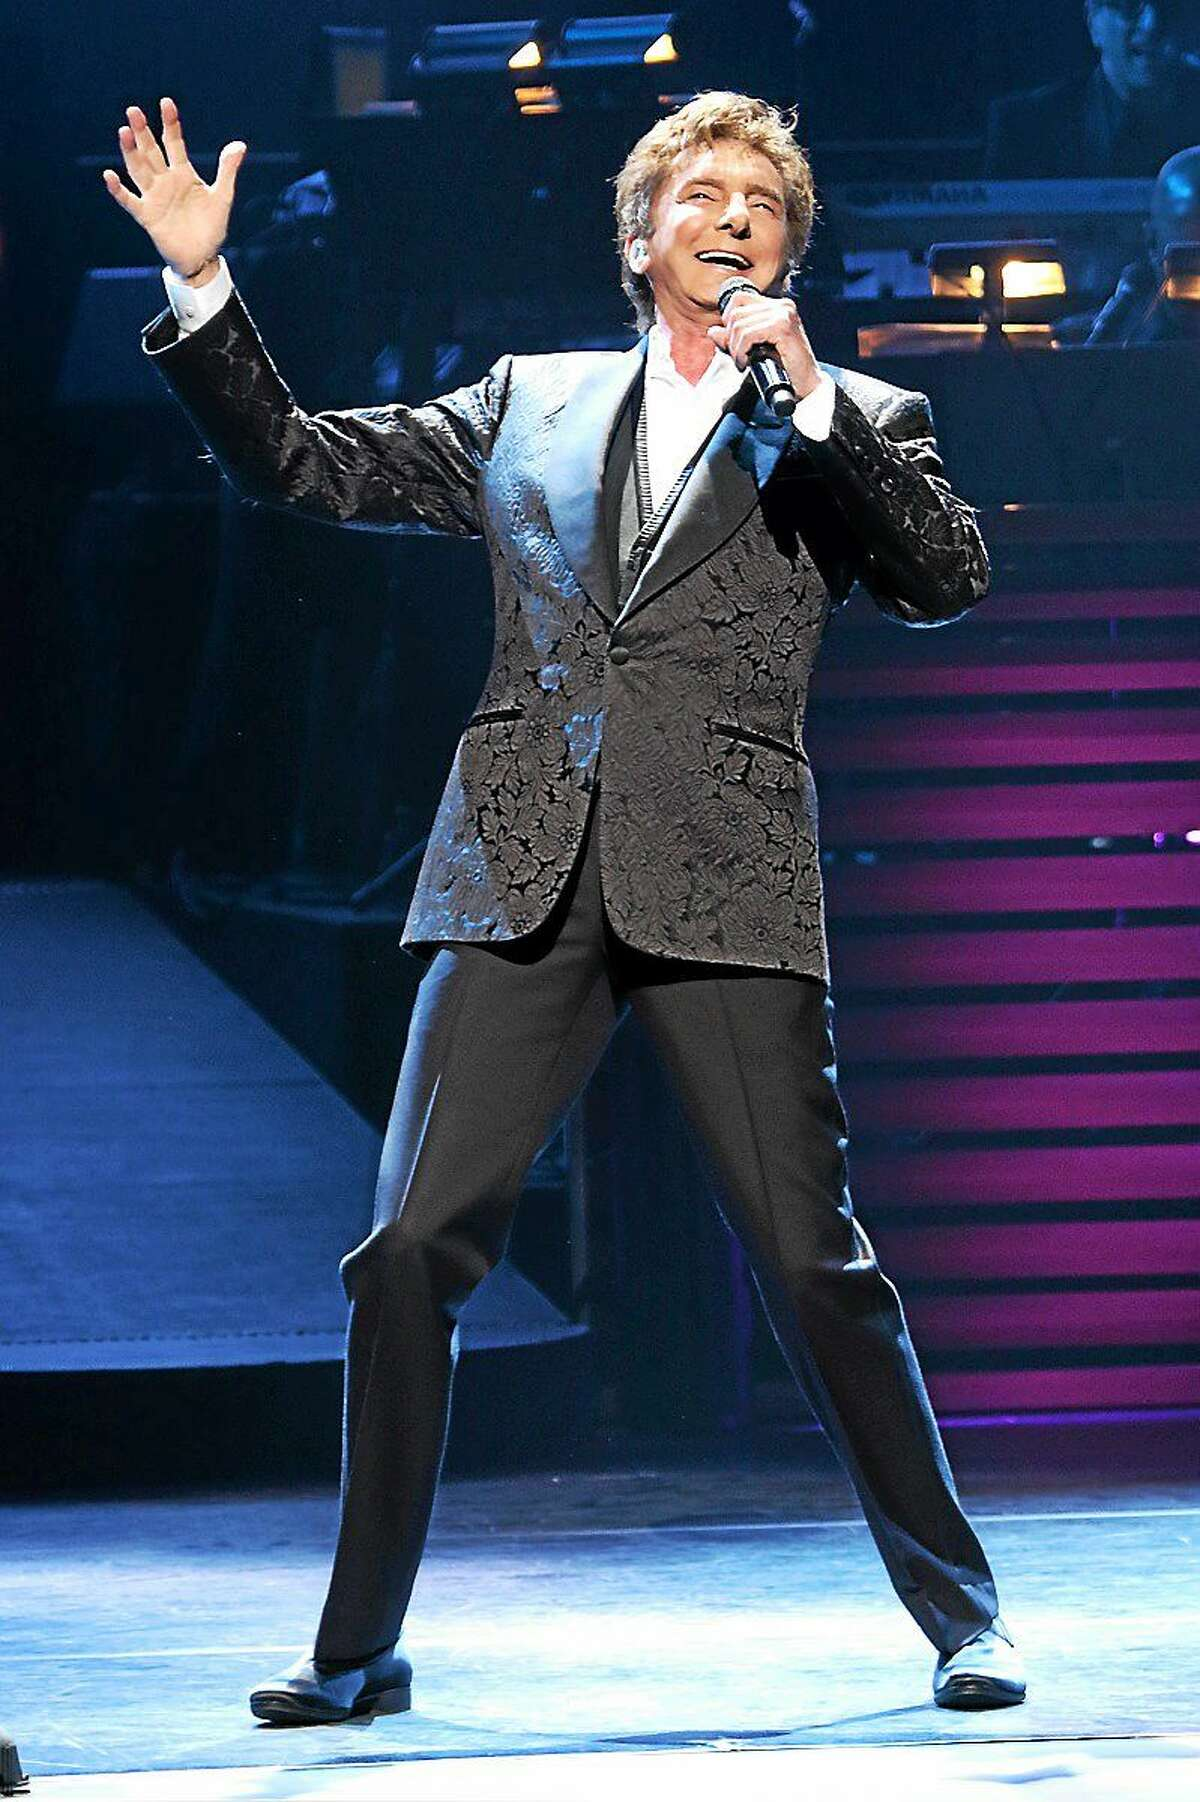 Photo by John Atashian Singer and songwriter Barry Manilow is shown performing on stage at the Foxwoods Resort & Casino in Mashantucket during his concert on March 28. At 71 years old with 51 years in the music business, this living legend is still going strong. He entertained the sold-out crowd of fans to a night full of his biggest hits.